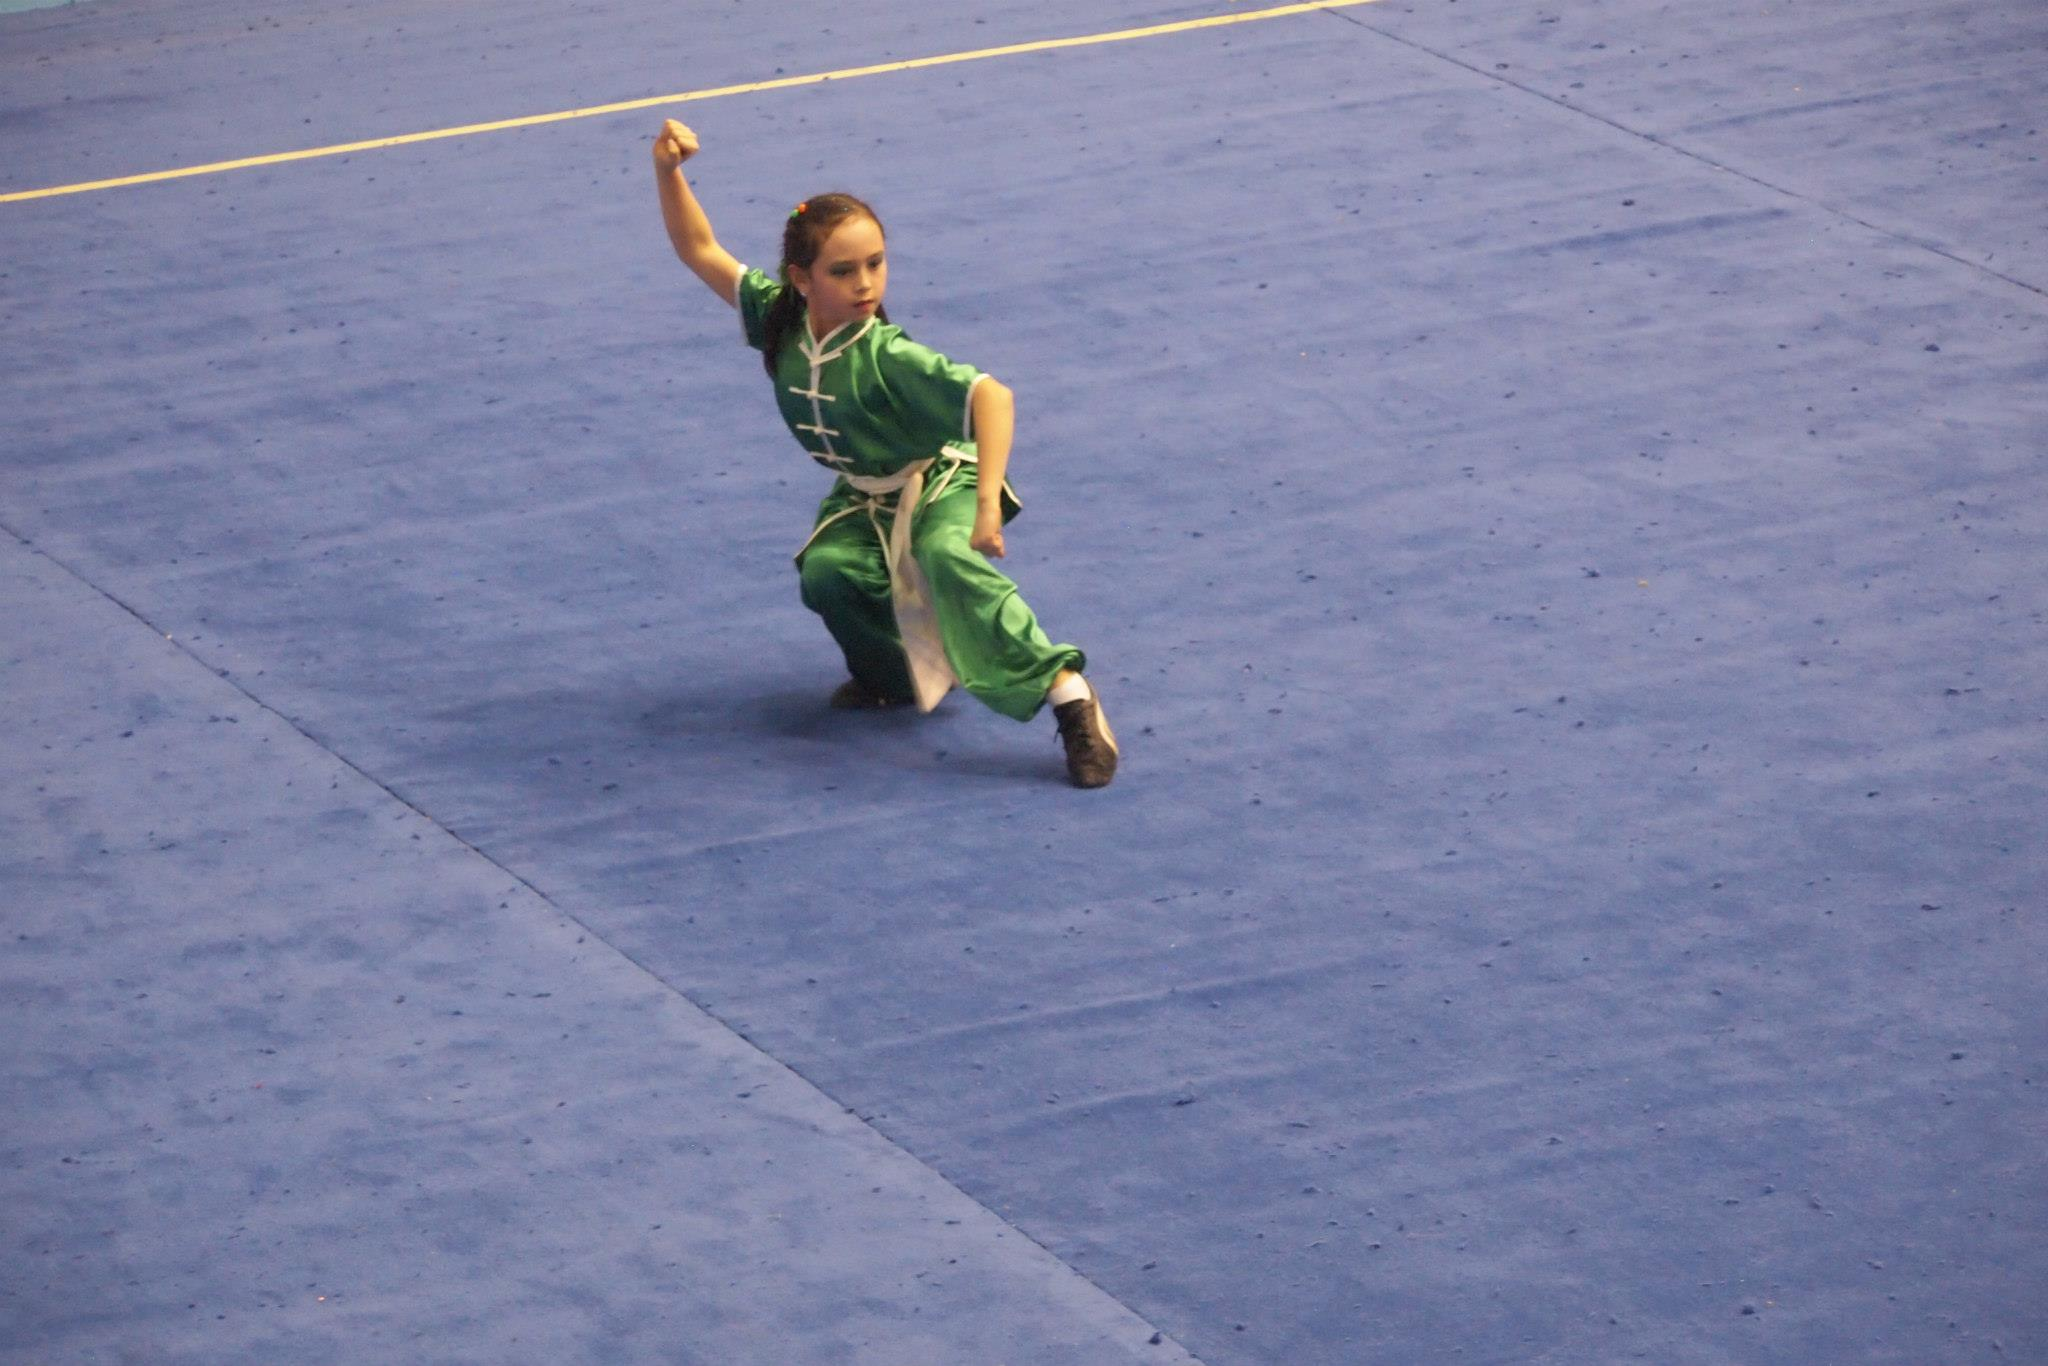 Wayland_Li_Wushu_World_Junior_Championships_2014_Turkey_Julia_1.jpg